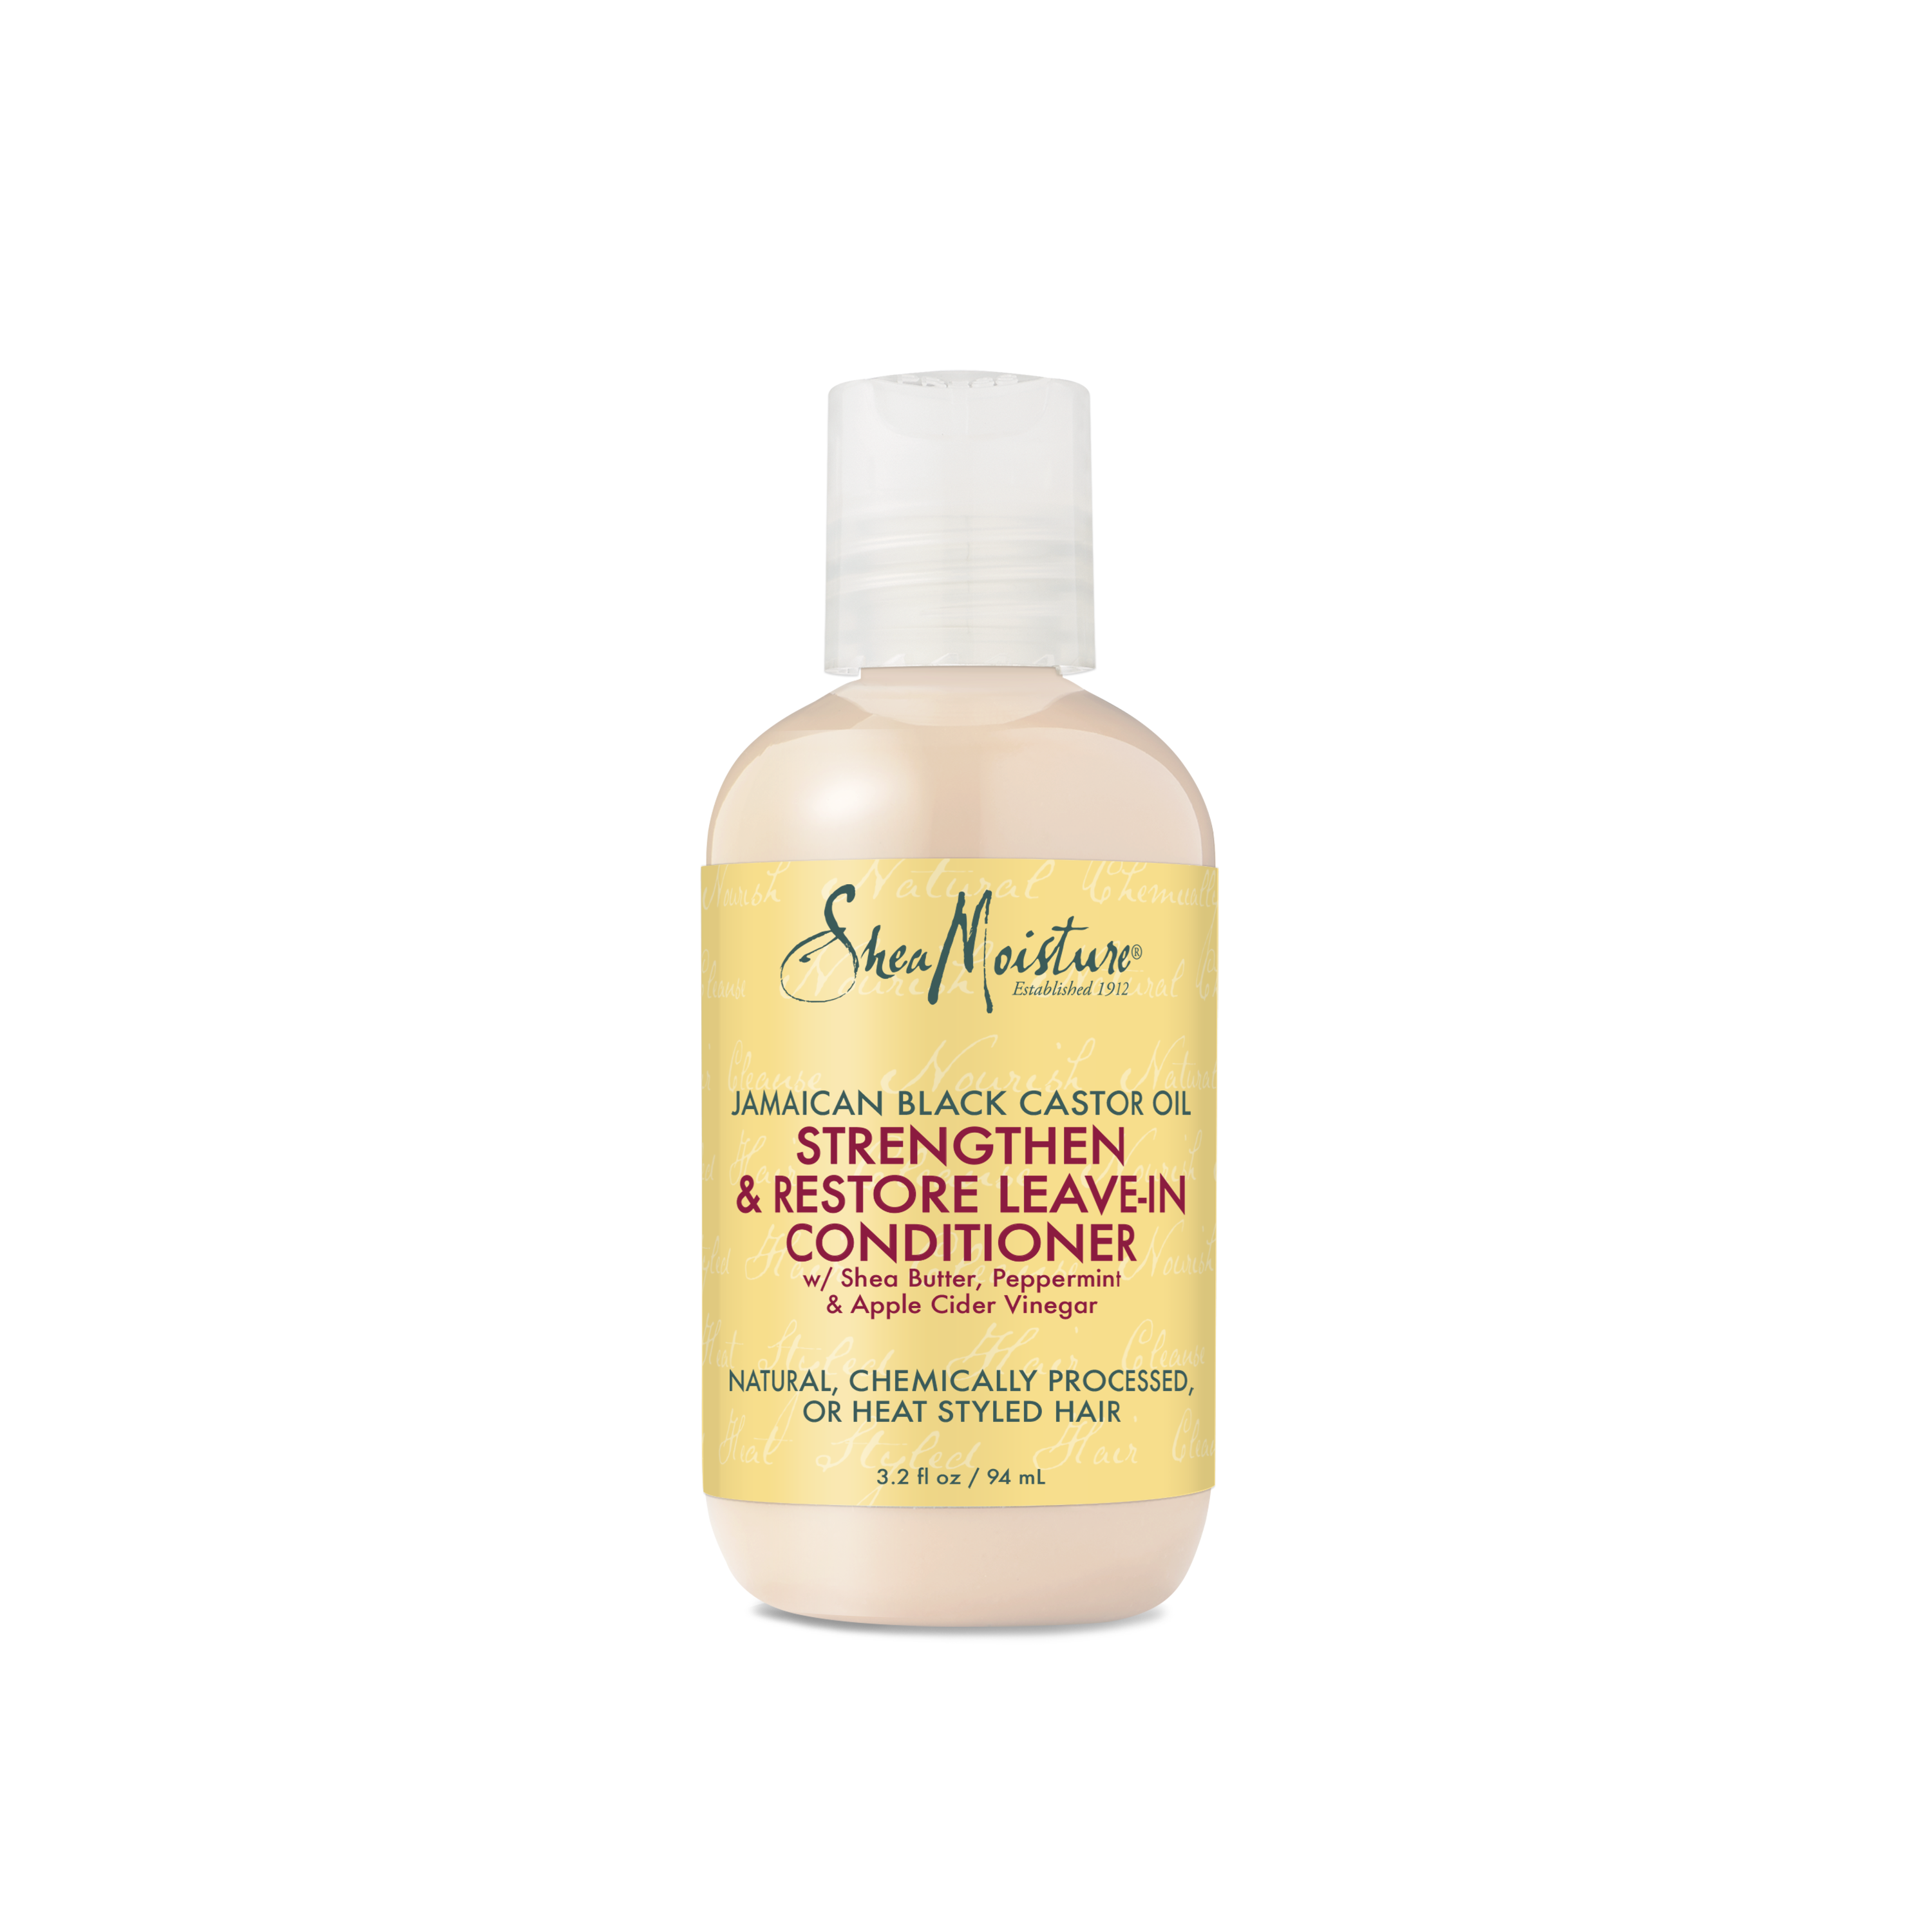 Shea Moisture Jamaican Black Castor Oil Strengthen & Restore Leave-In Conditioner, Travel